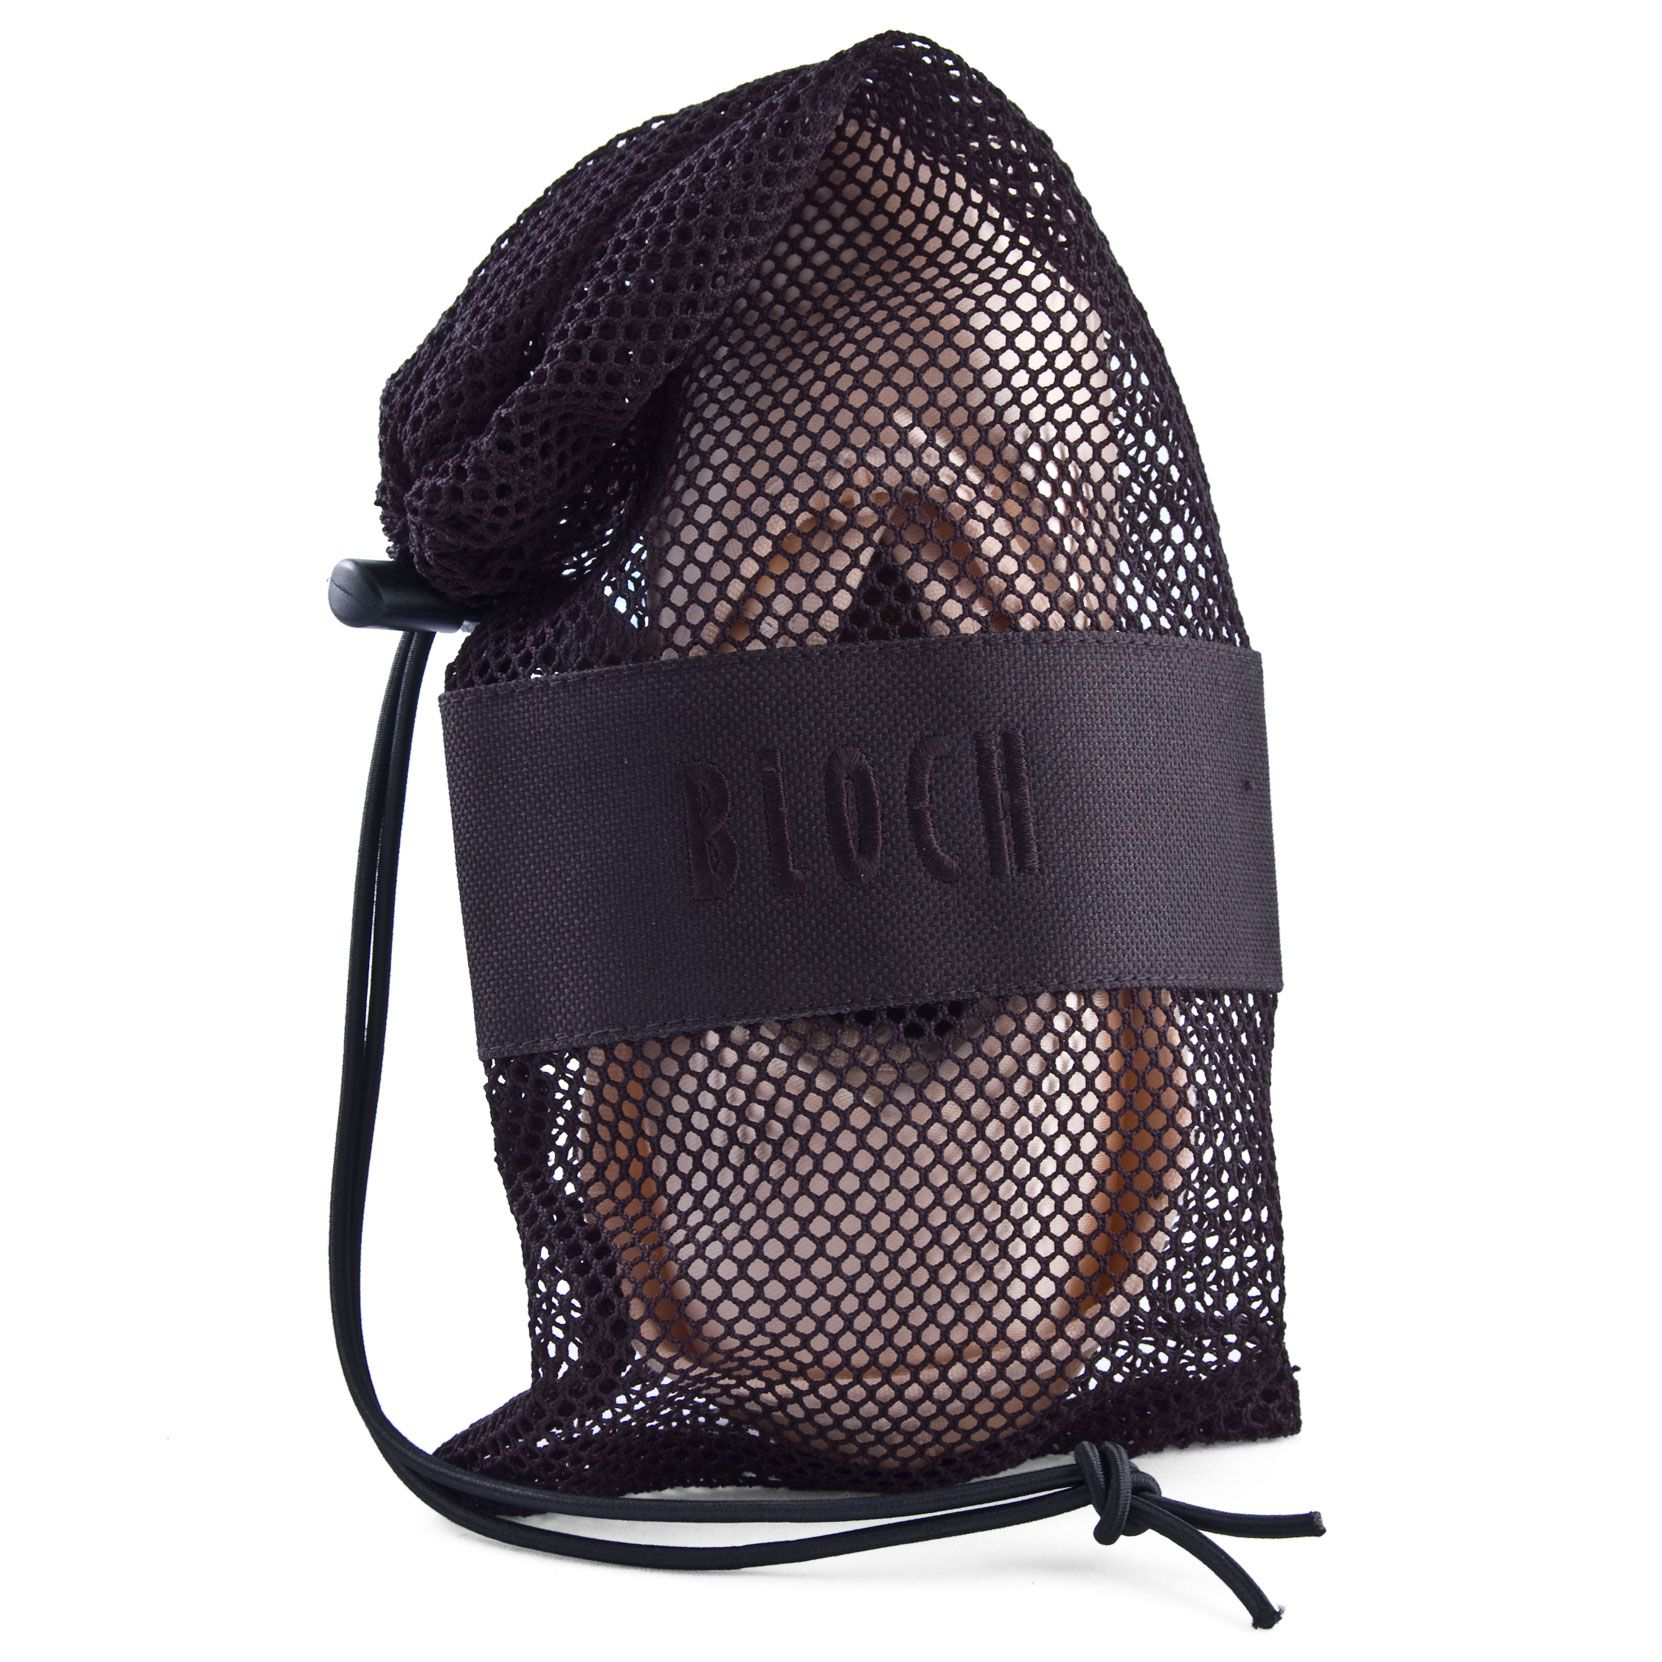 Bloch Mesh Pointe Shoe Bag. Storing bag for Pointe Shoes. Visit www.dancegear.co.uk